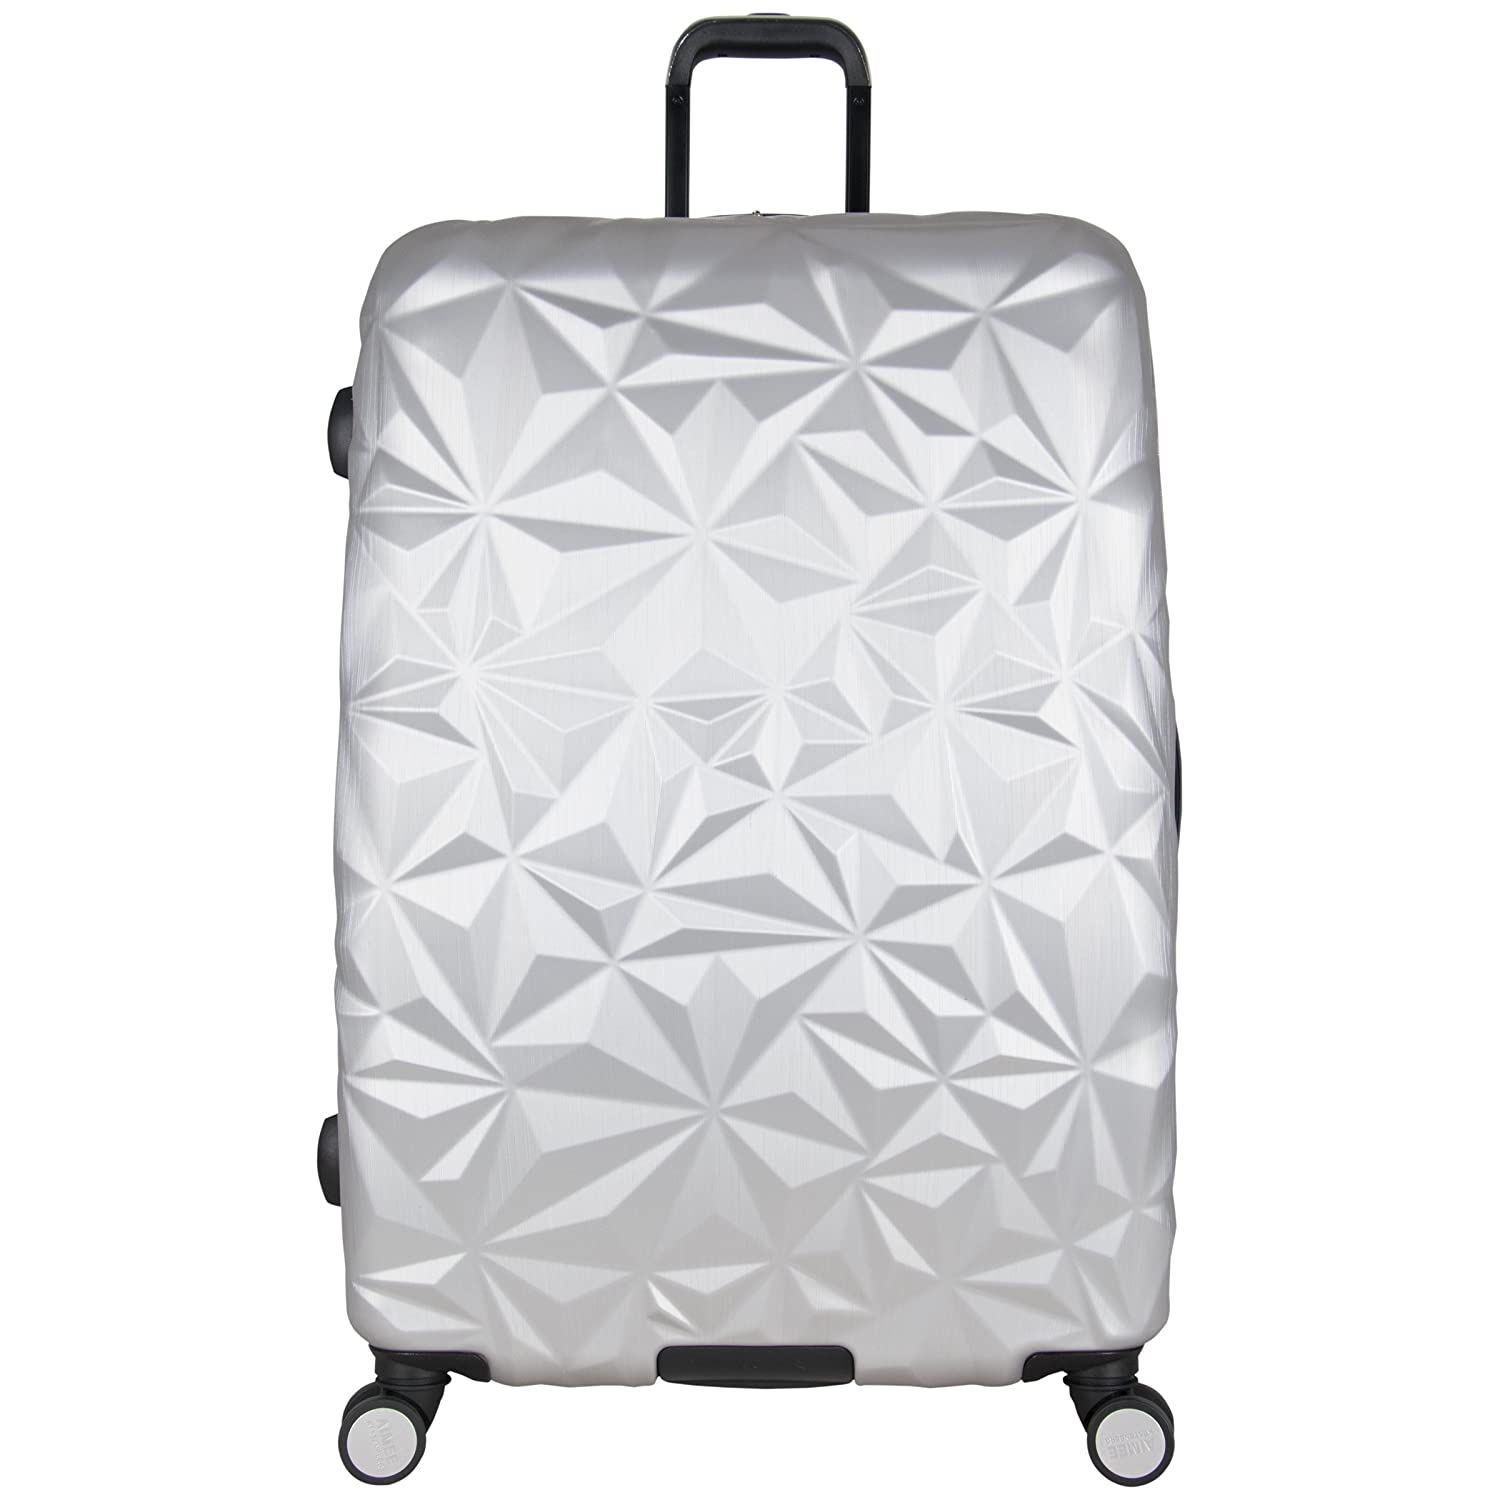 Aimee Kestenberg Women's Geo Chic 28 Hardside Expandable 8-Wheel Spinner Checked Luggage, Rose Gold 48702RGH